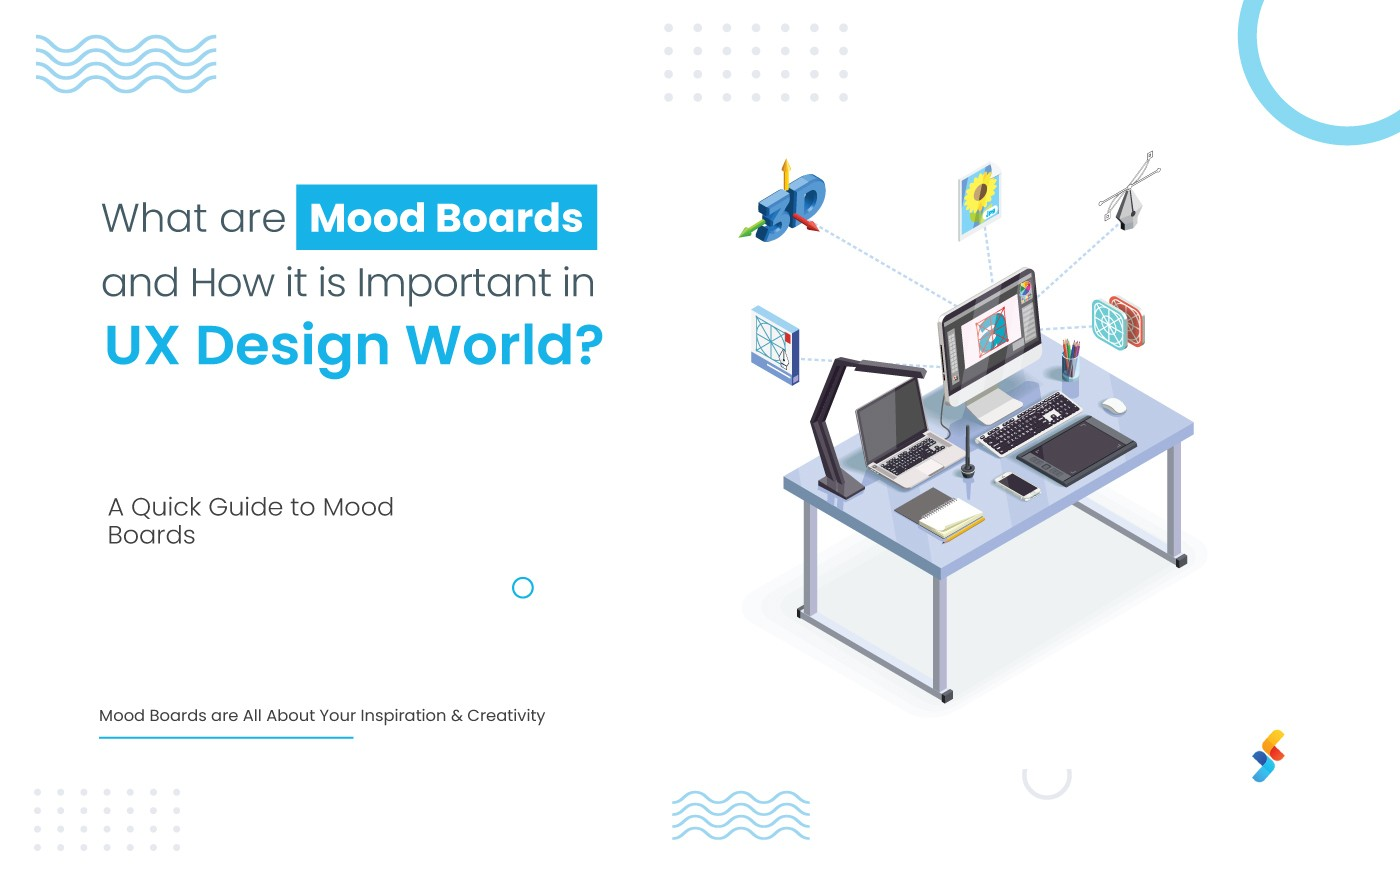 What are Mood Boards and How it is Important in UX Design World?